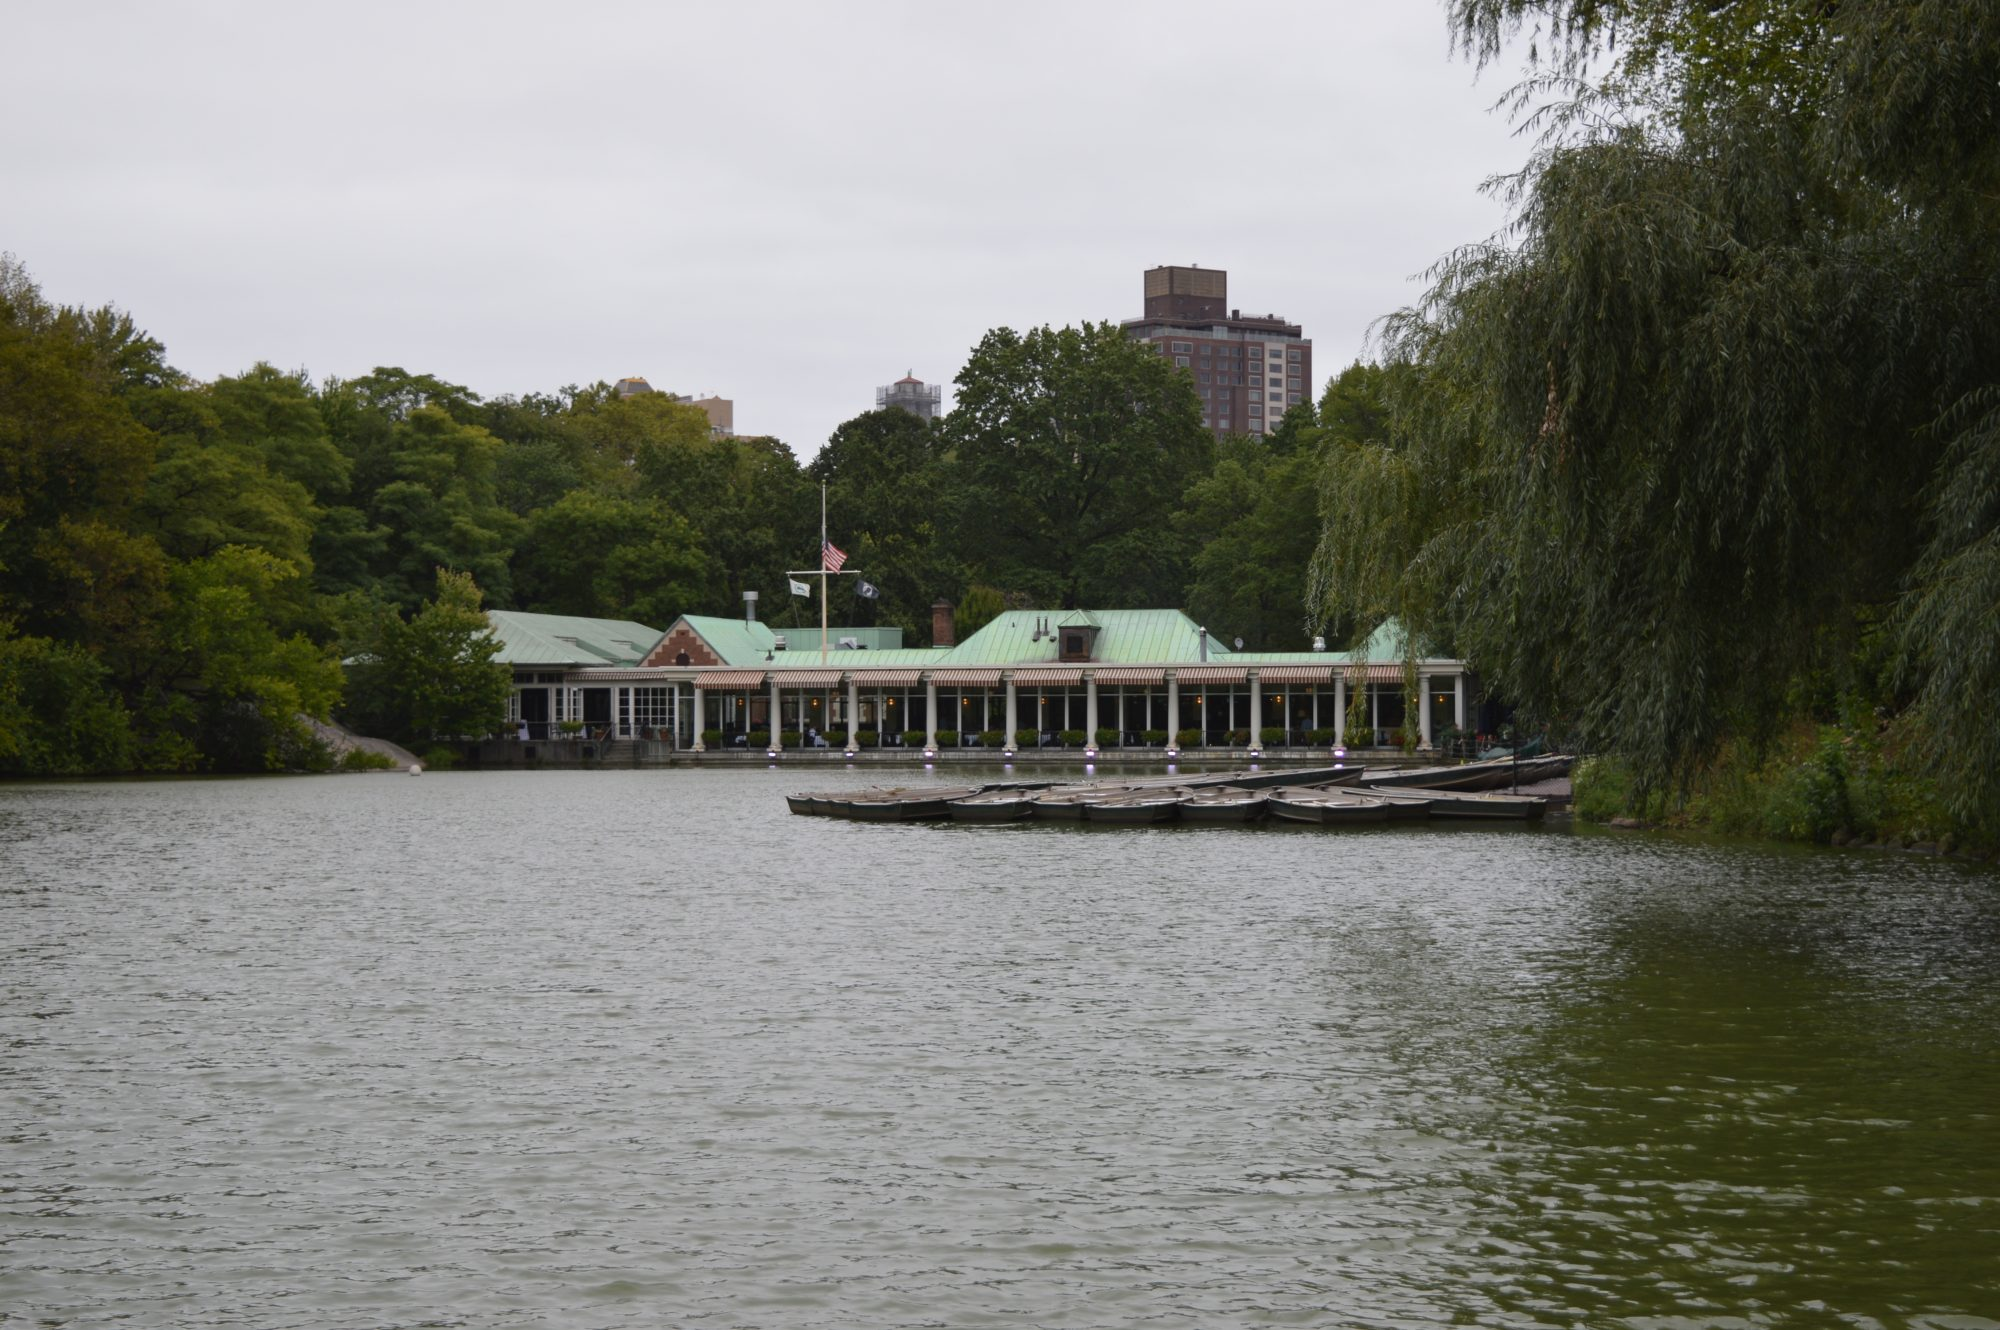 The Boat House New York City